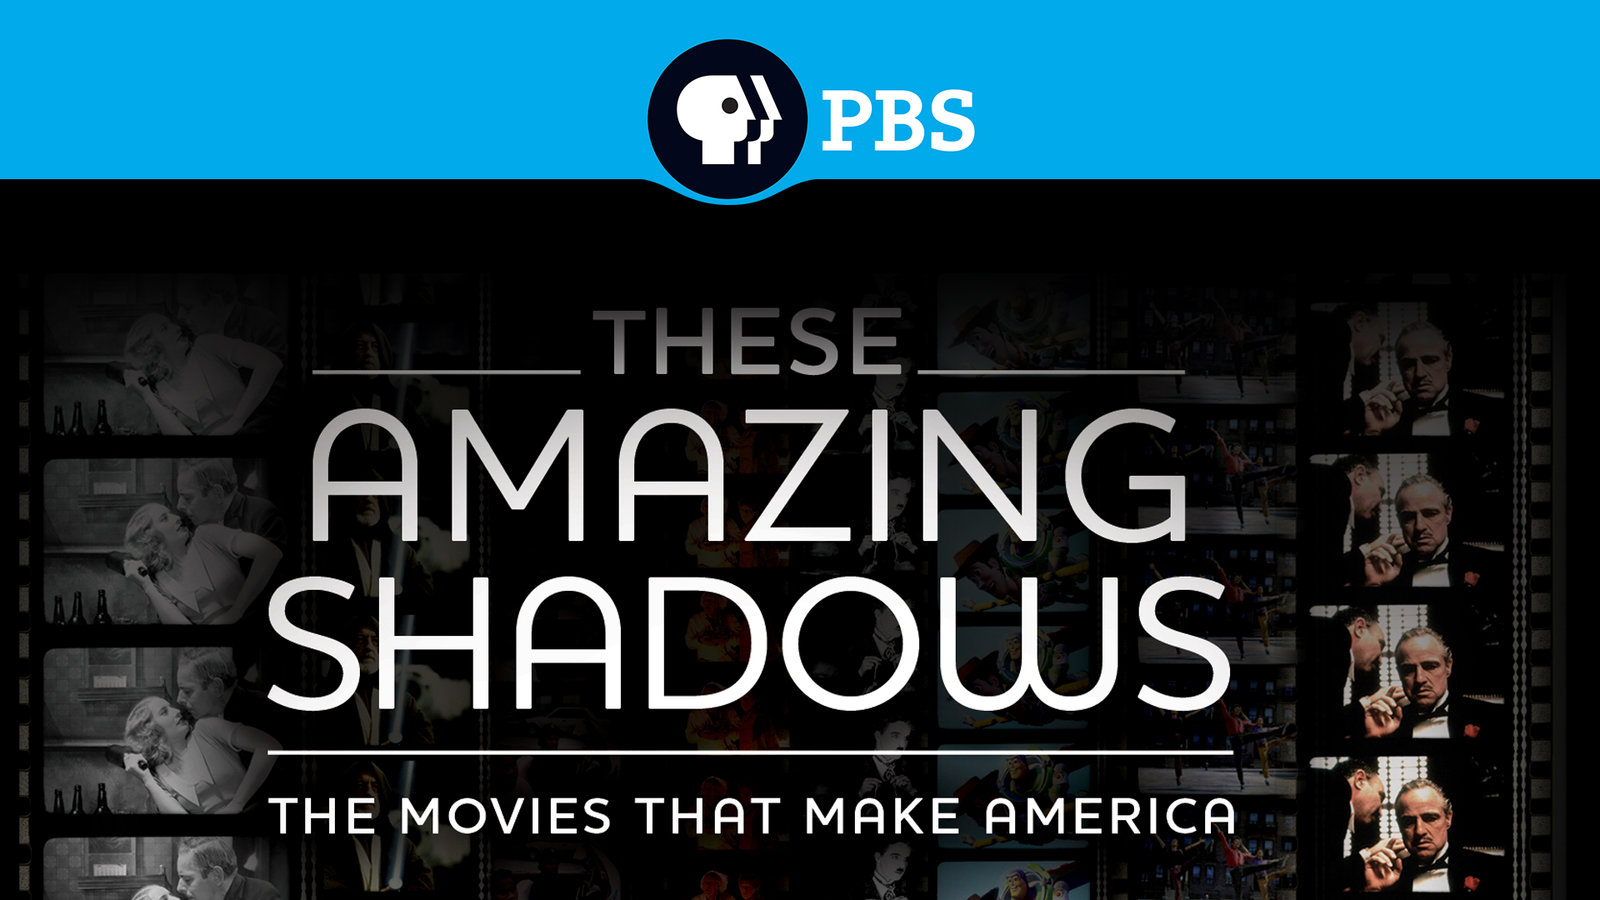 These Amazing Shadows - The Movies That Make America